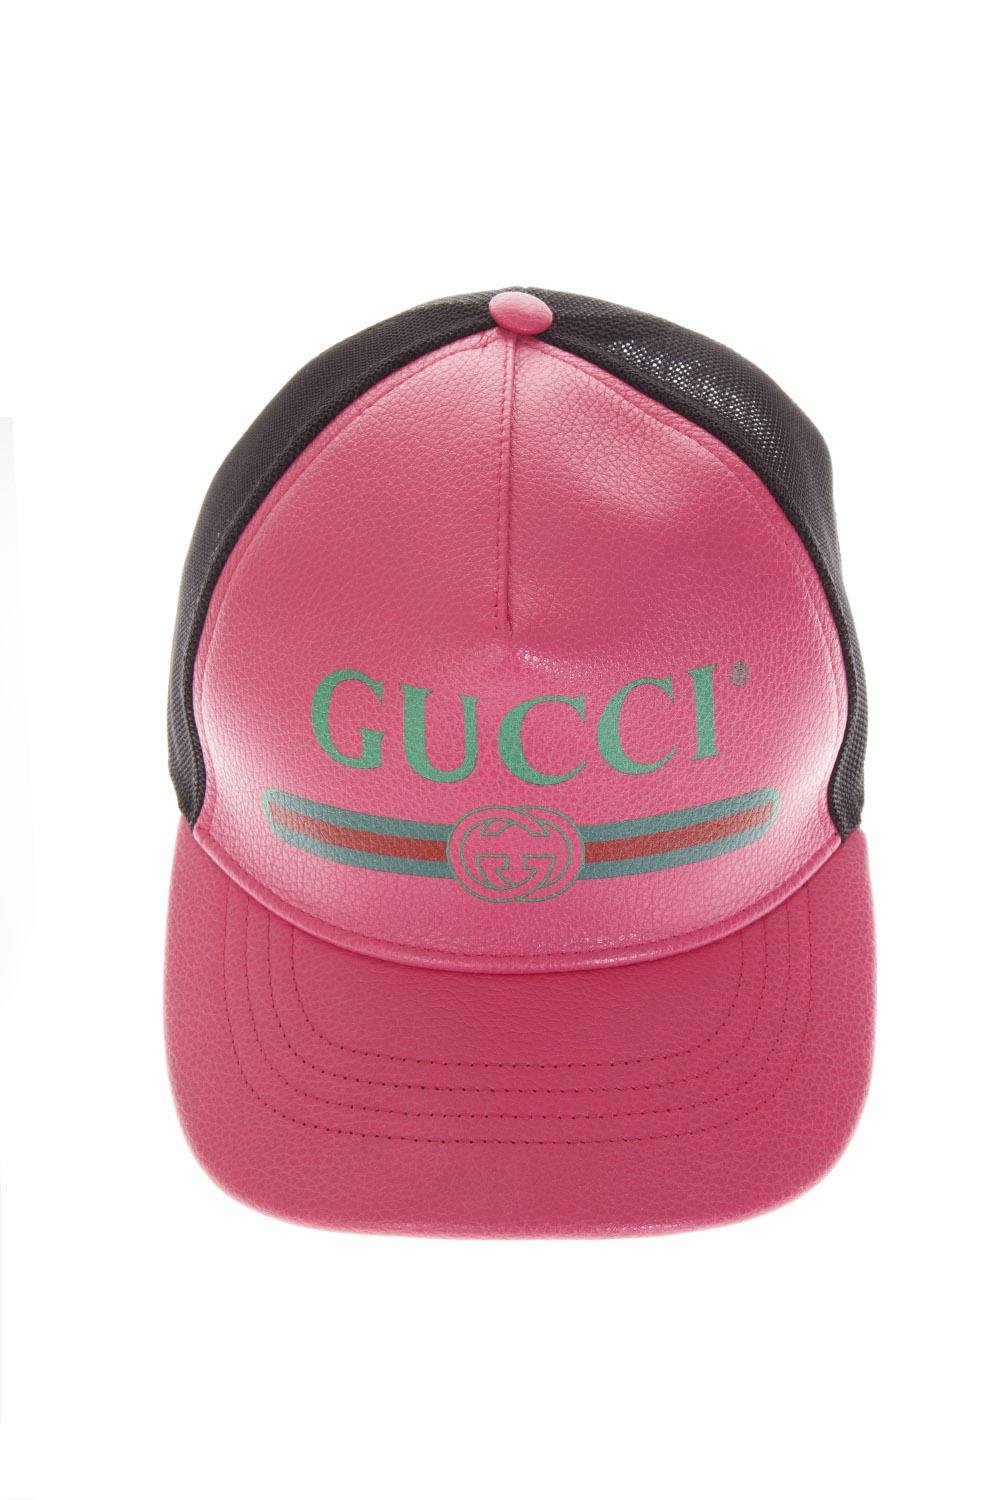 BASEBALL HAT COLOR PINK WITH LOGO GUCCI FW 2018 - GUCCI - Boutique Galiano ae0679692